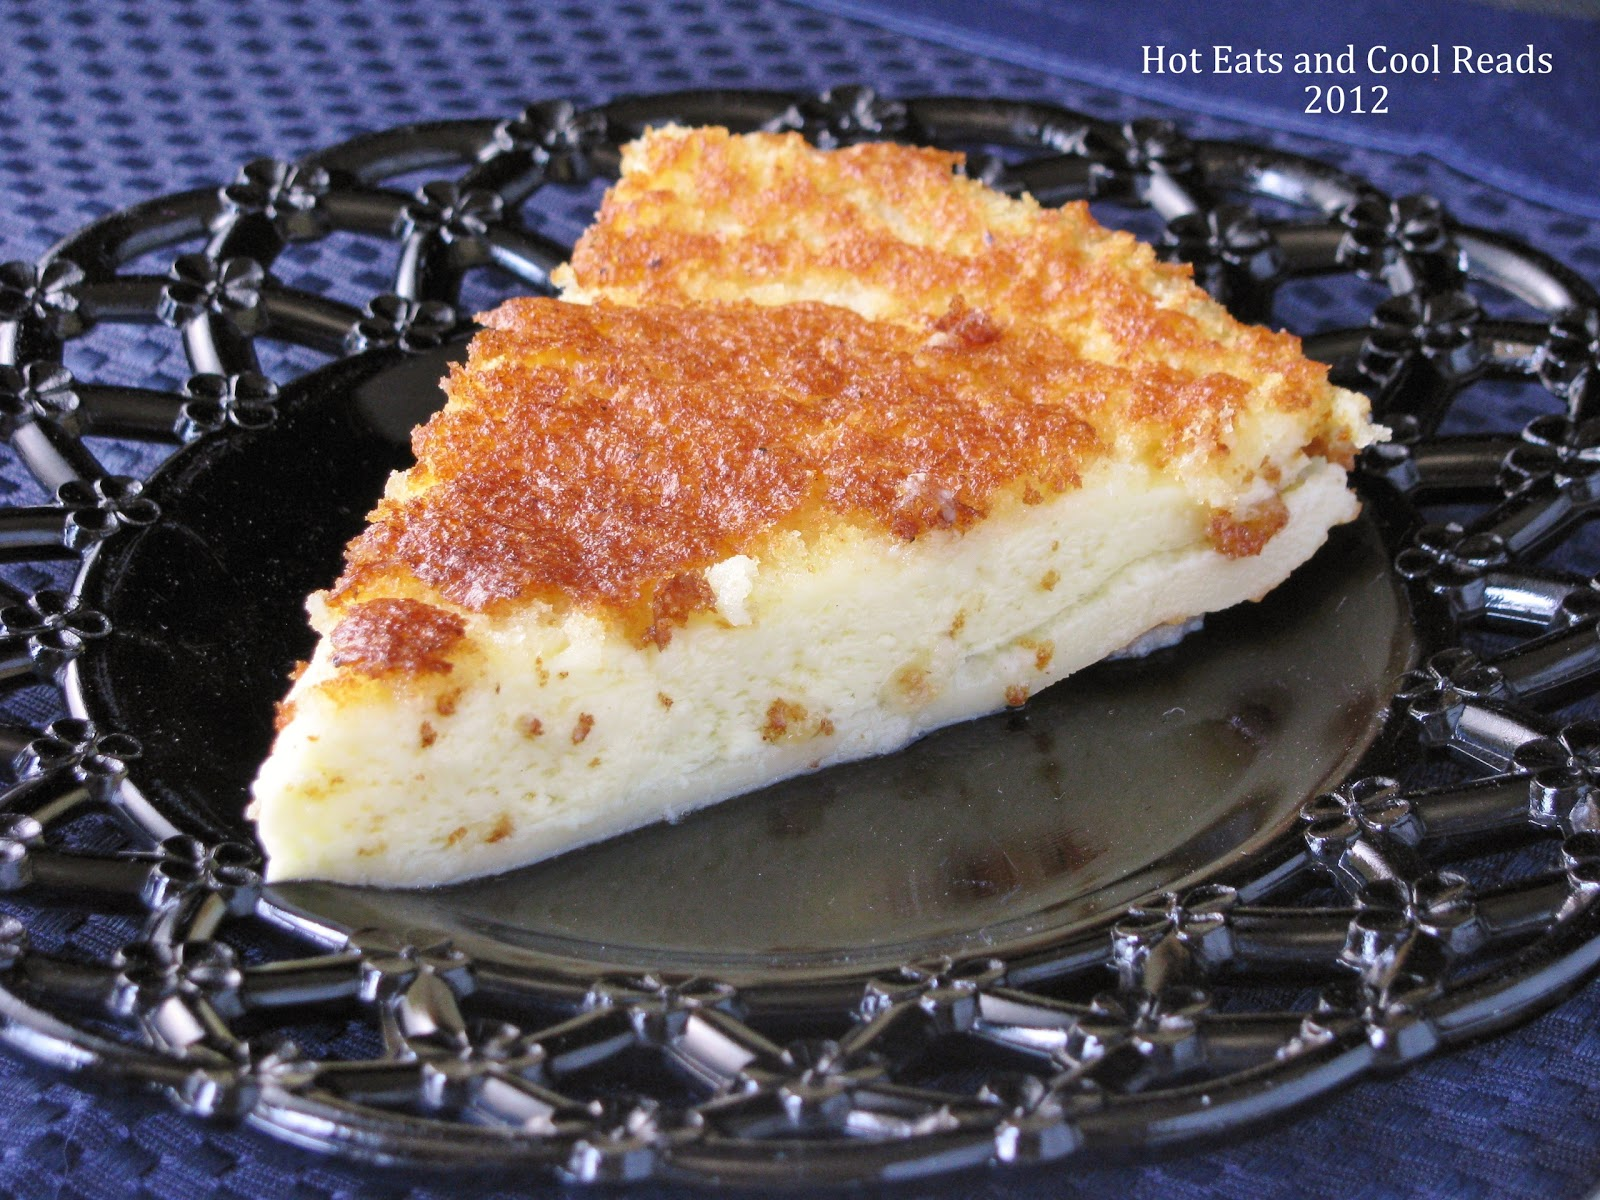 ... minute dessert! Magic Crust Custard Pie from Hot Eats and Cool Reads